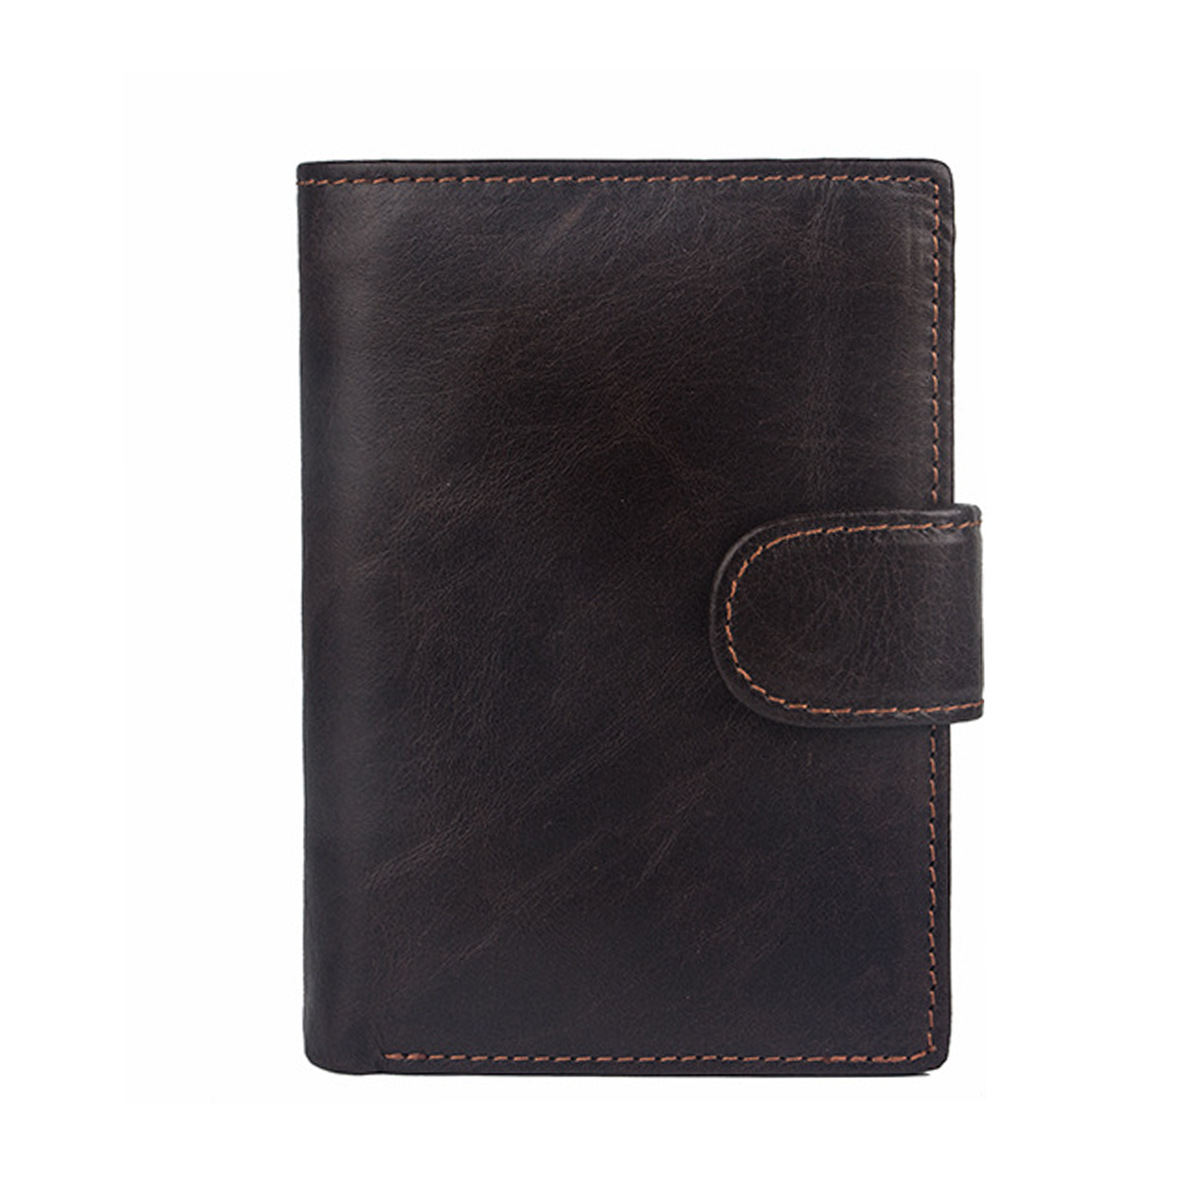 Genuine Leather Wallet Men with Card Holder Card Holder Coin Purse Men's High-quality Classic Retro Foldable Wallet  Purses man